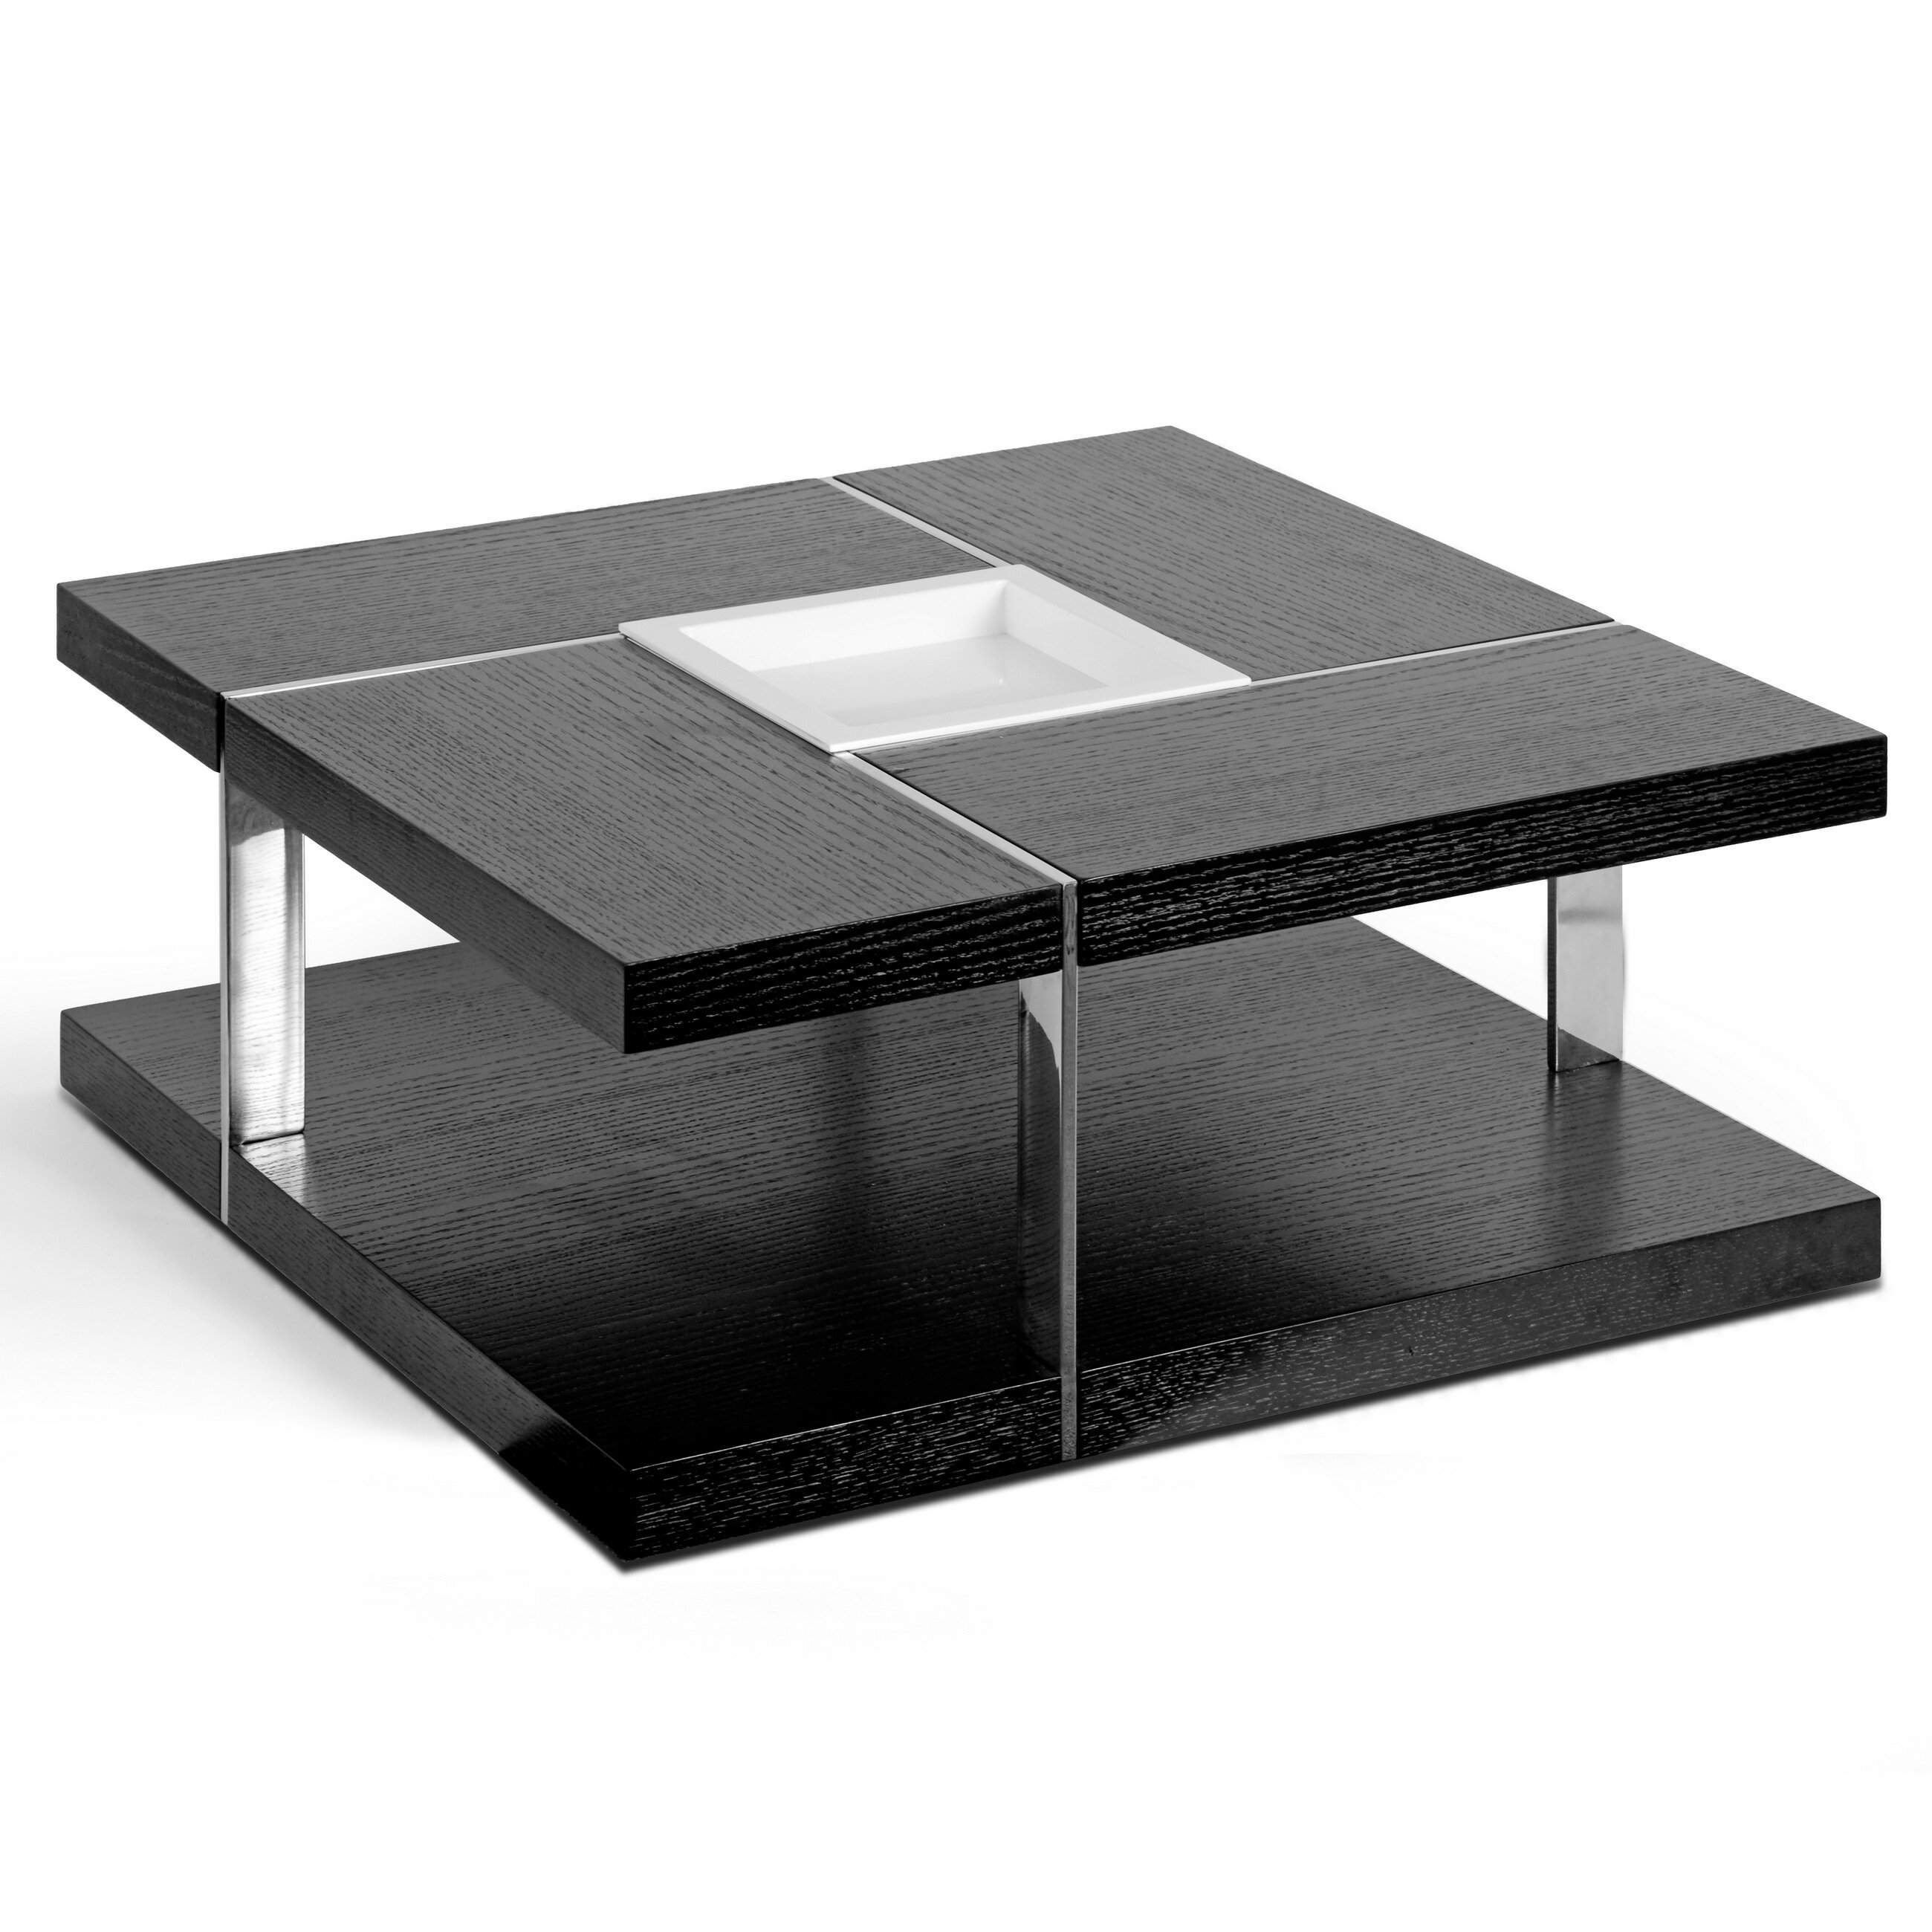 Glamour home decor aira square coffee table with tray top wayfair Decorative trays for coffee table